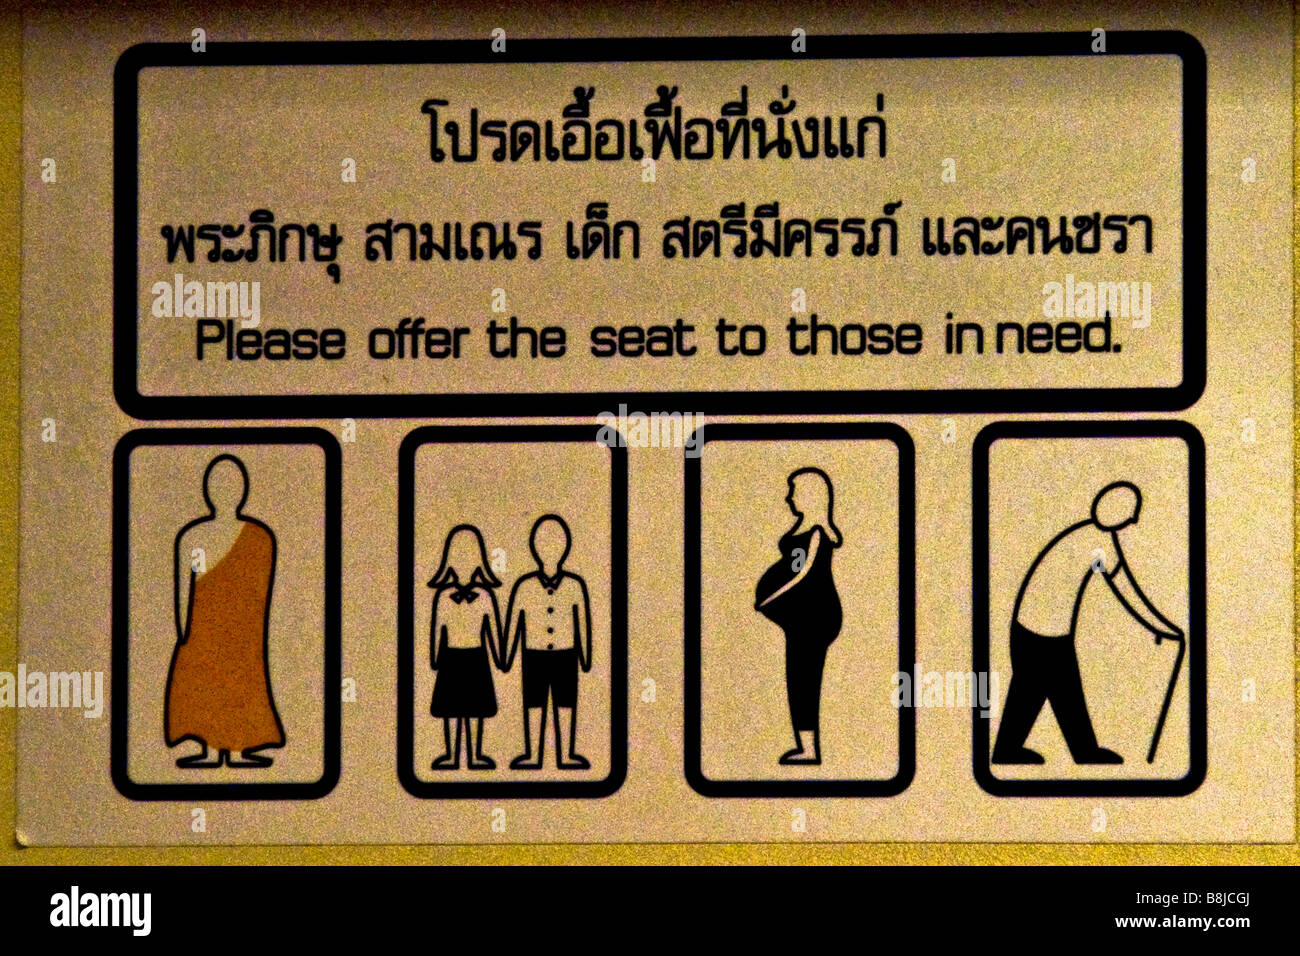 A sign requesting when to offer a seat to another passenger - Stock Image